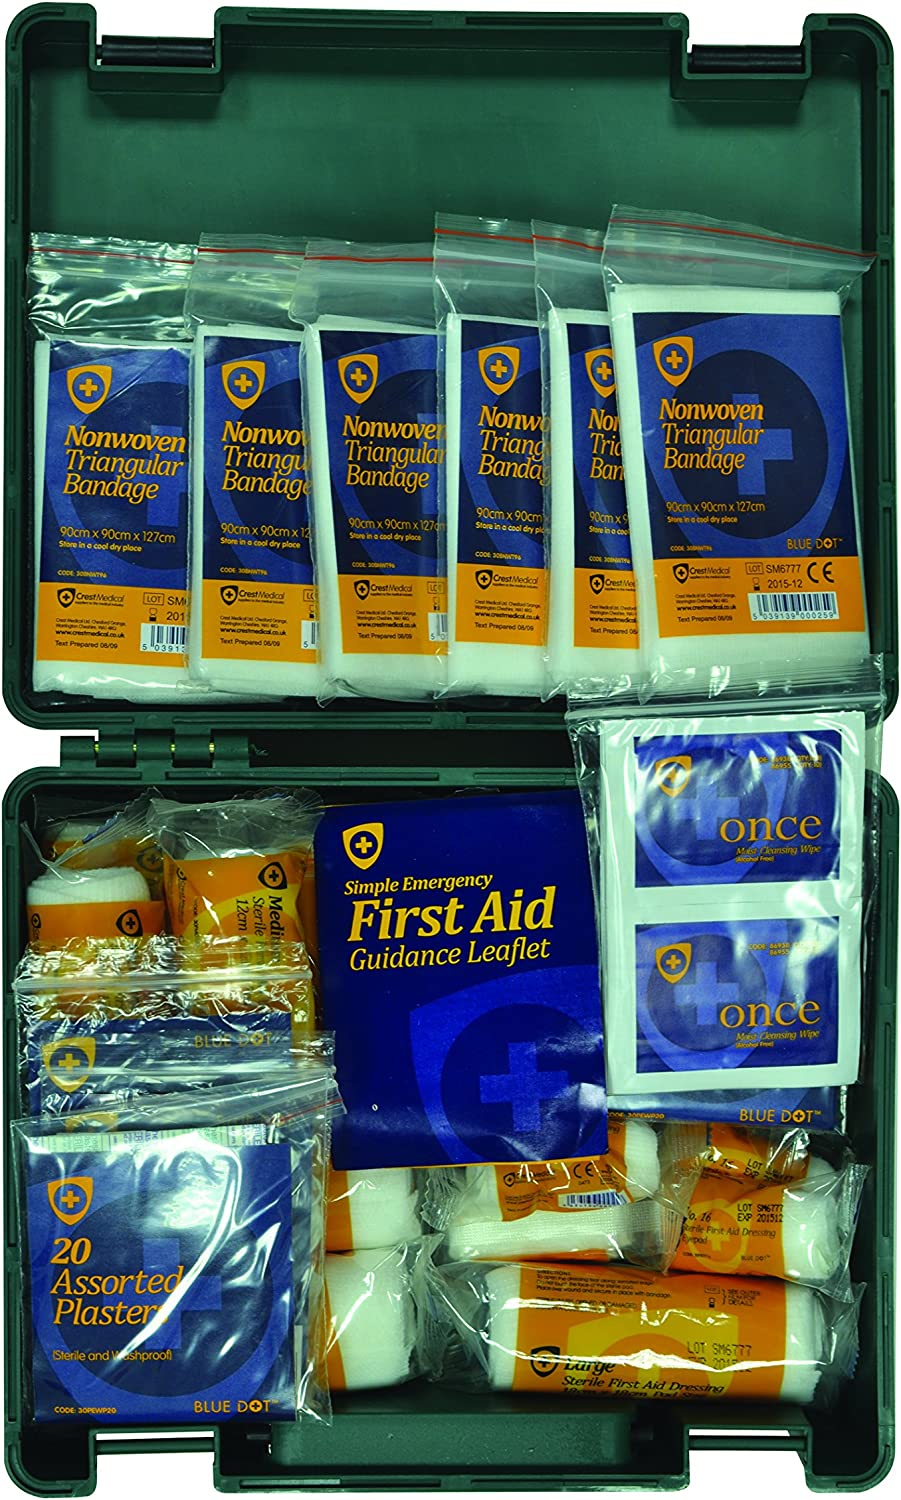 Blue Dot Standard Workplace and Statutory First Aid Kit: Health & Personal Care